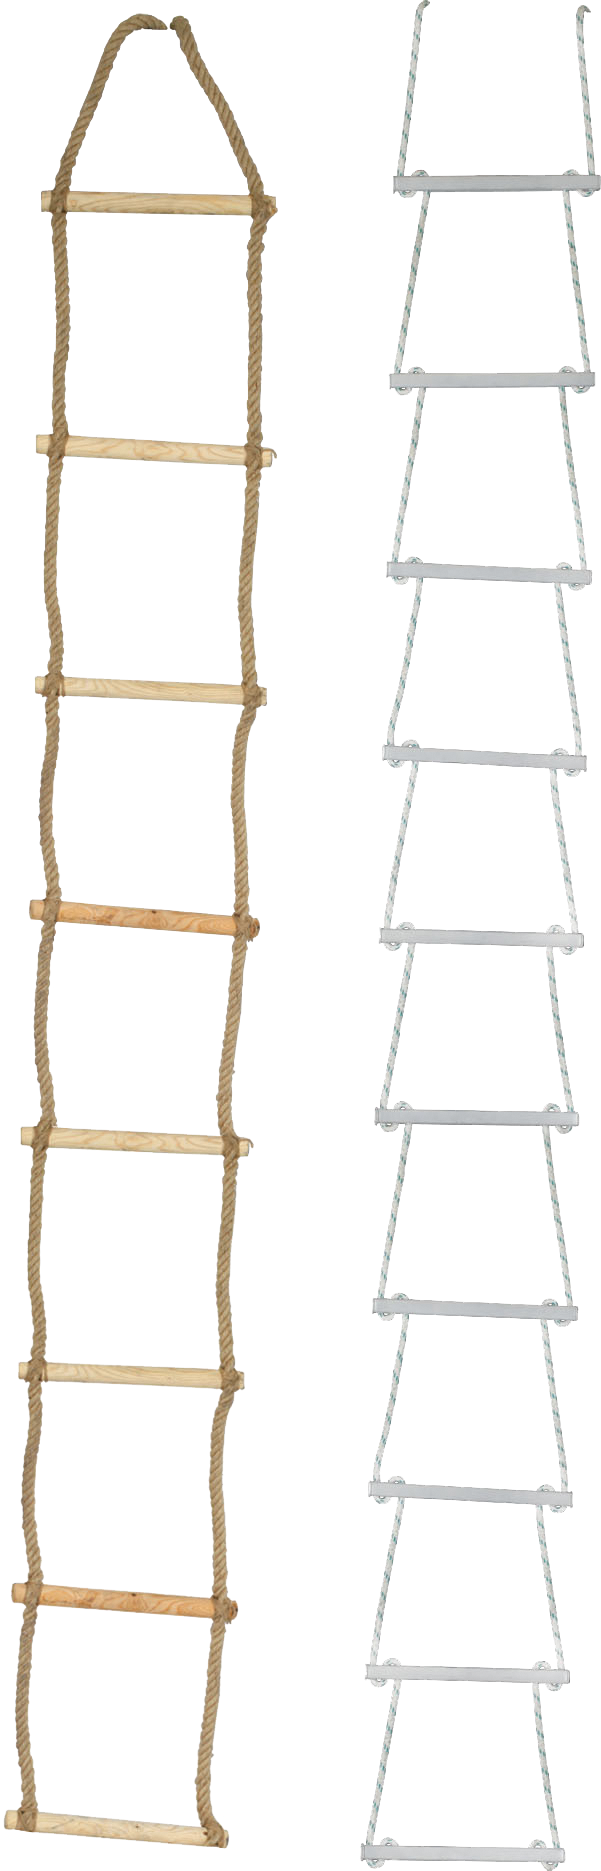 Ladder clipart rope ladder.  cool delighted wire